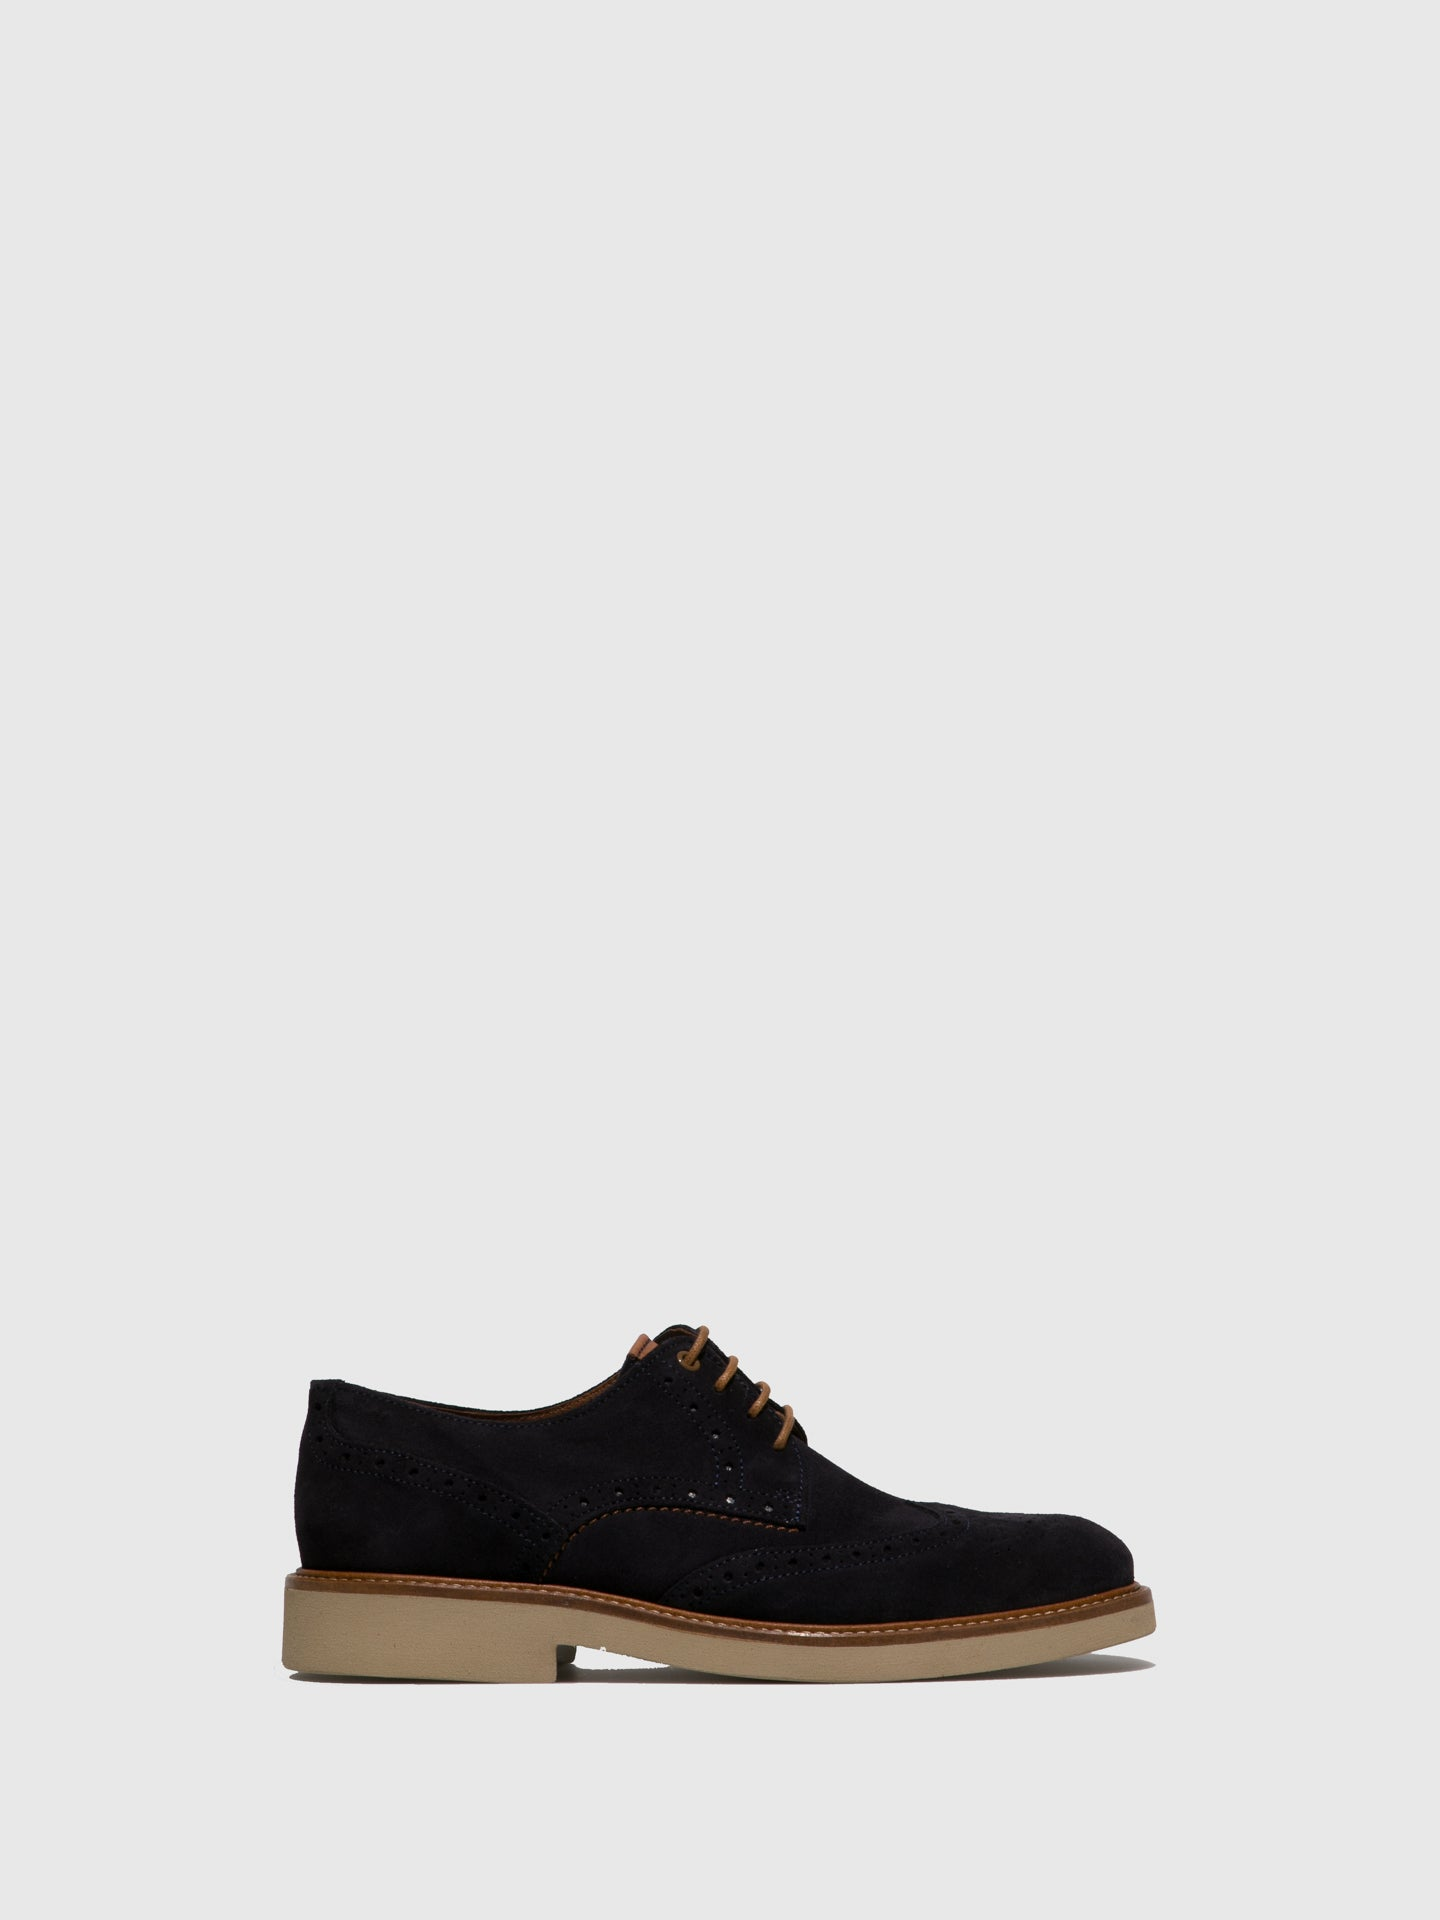 Foreva Navy Oxford